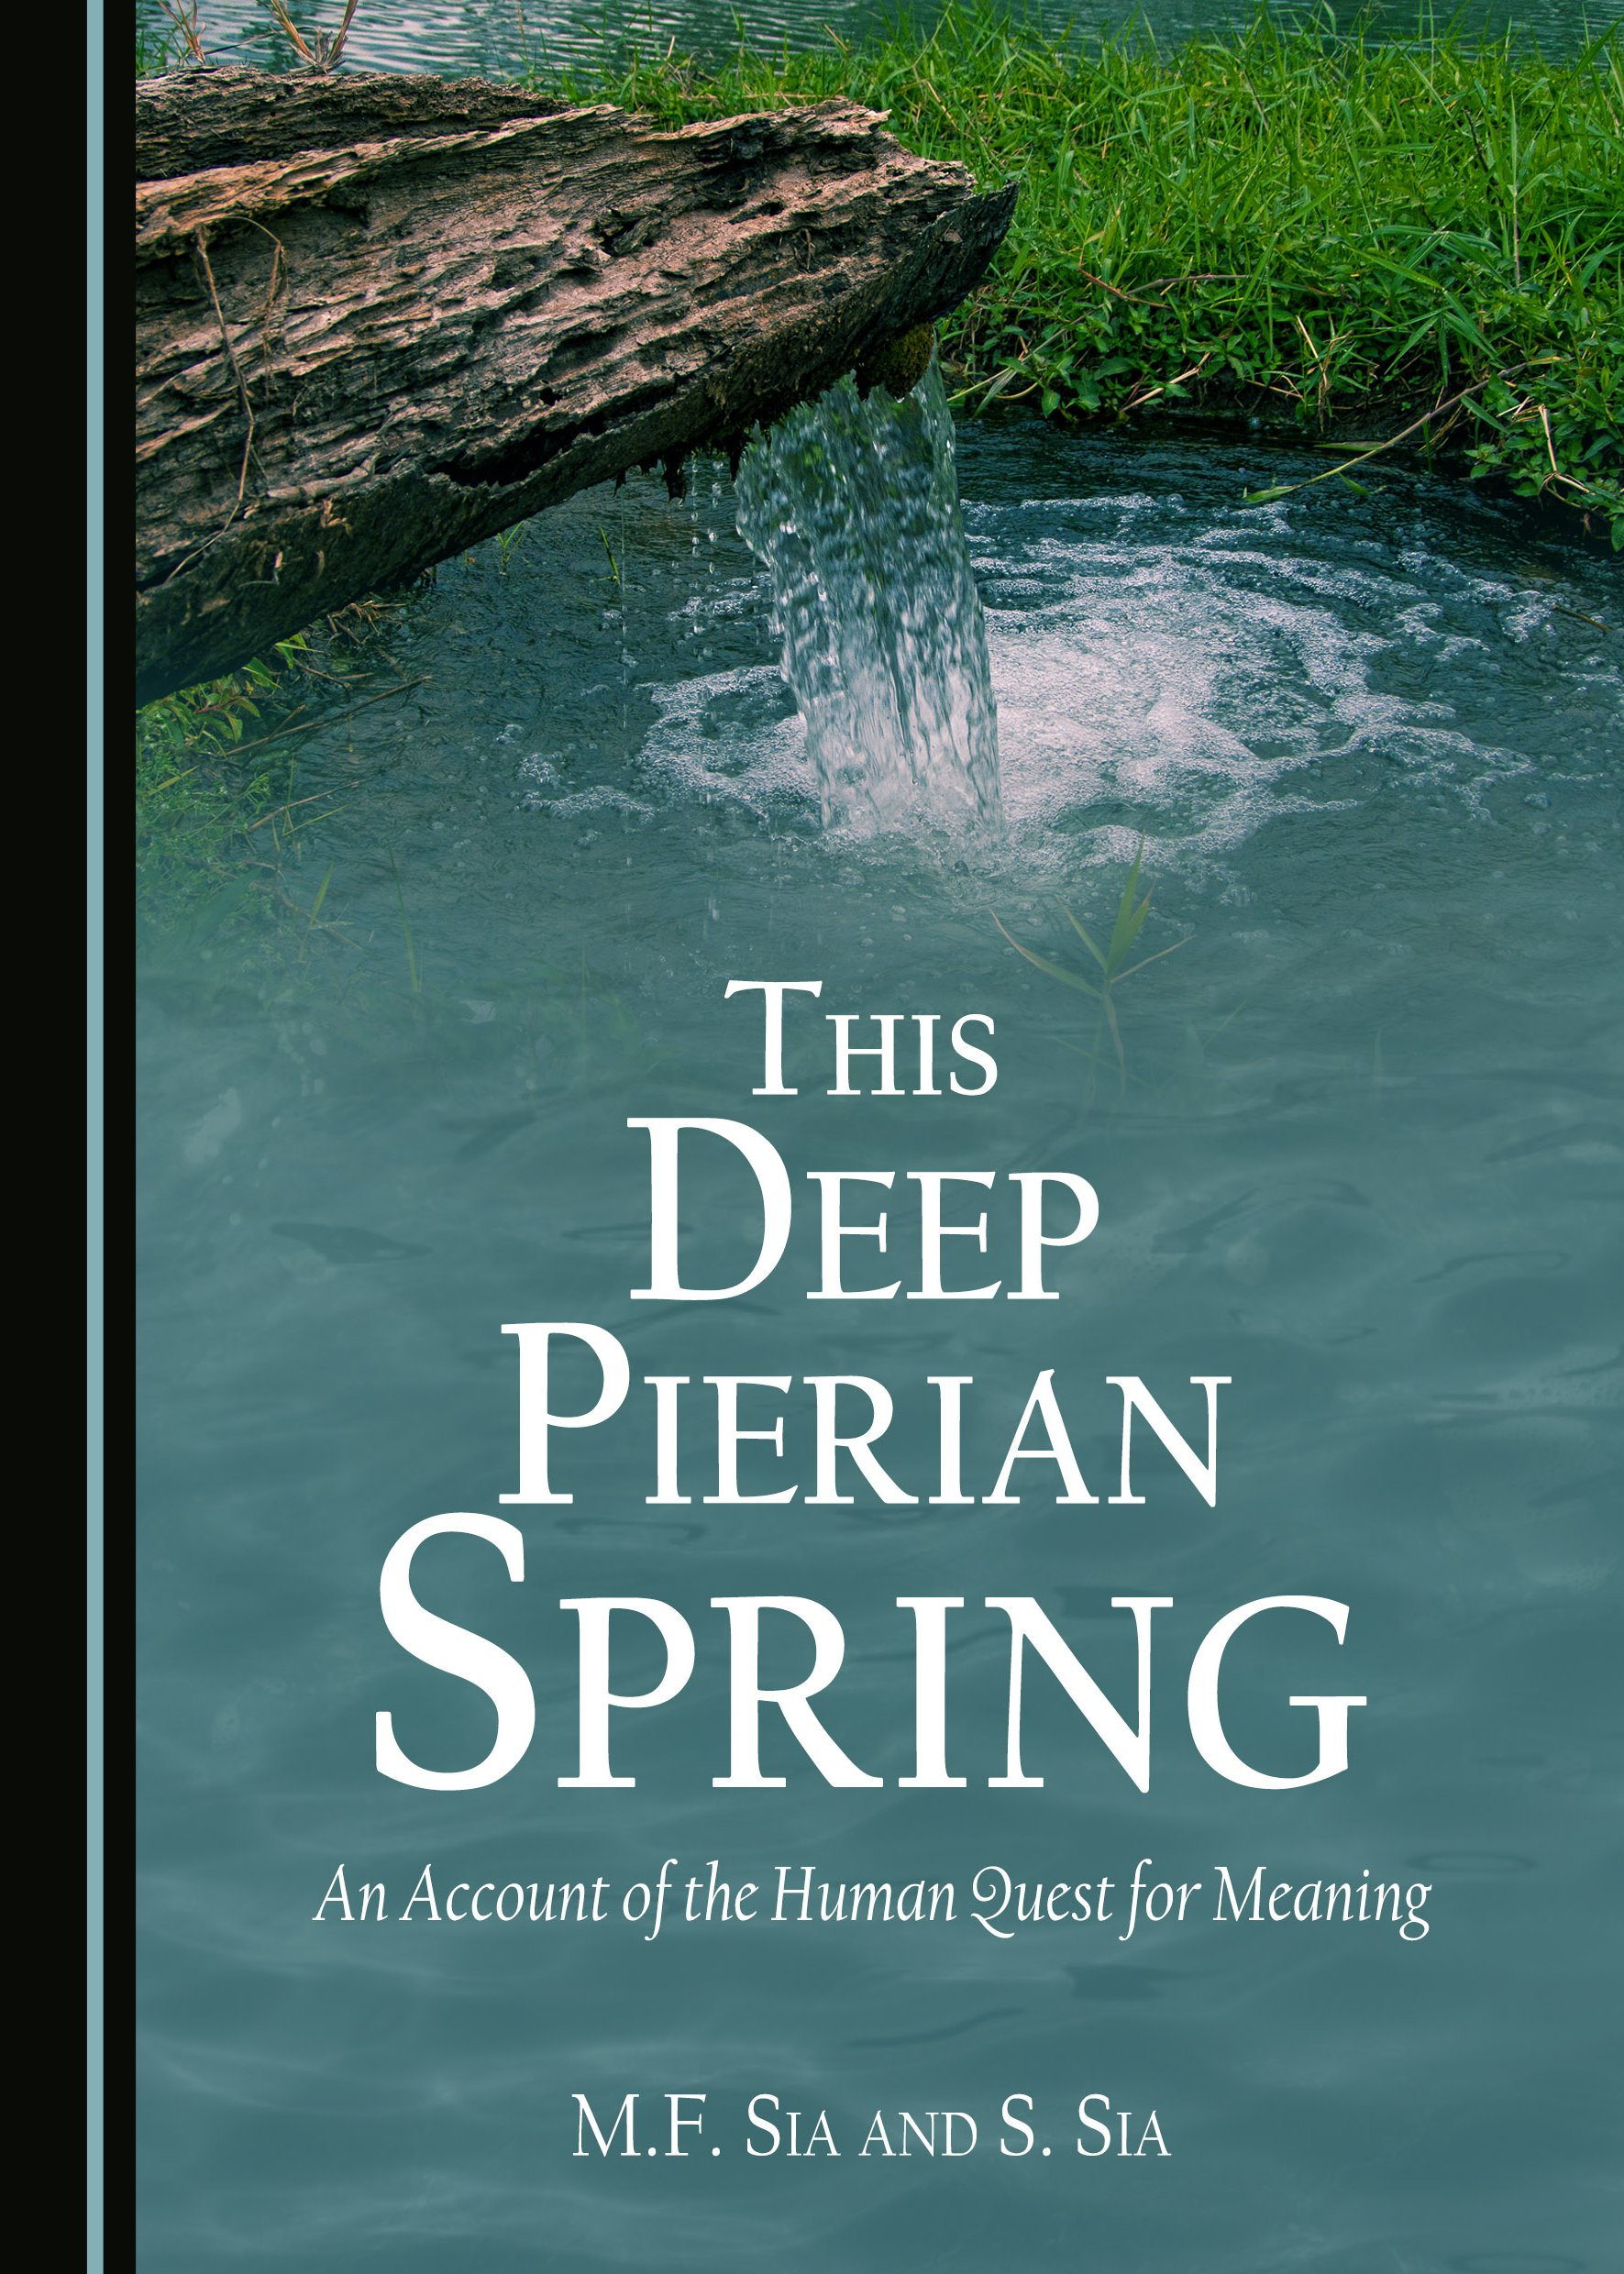 This Deep Pierian Spring: An Account of the Human Quest for Meaning